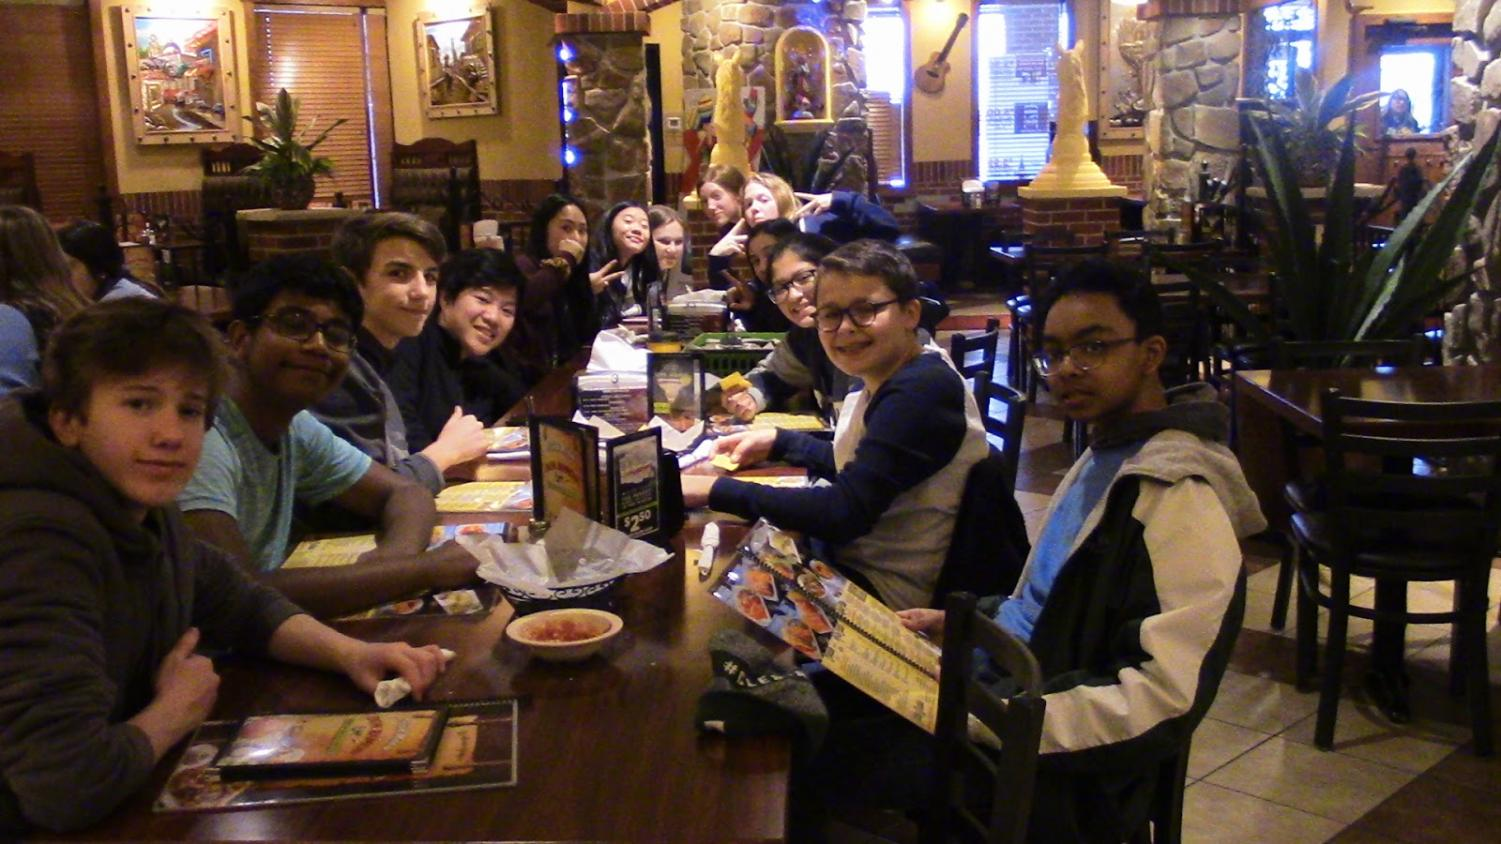 Yum! Spanish Club members enjoy their lunch at Don Ramon's on Monday.